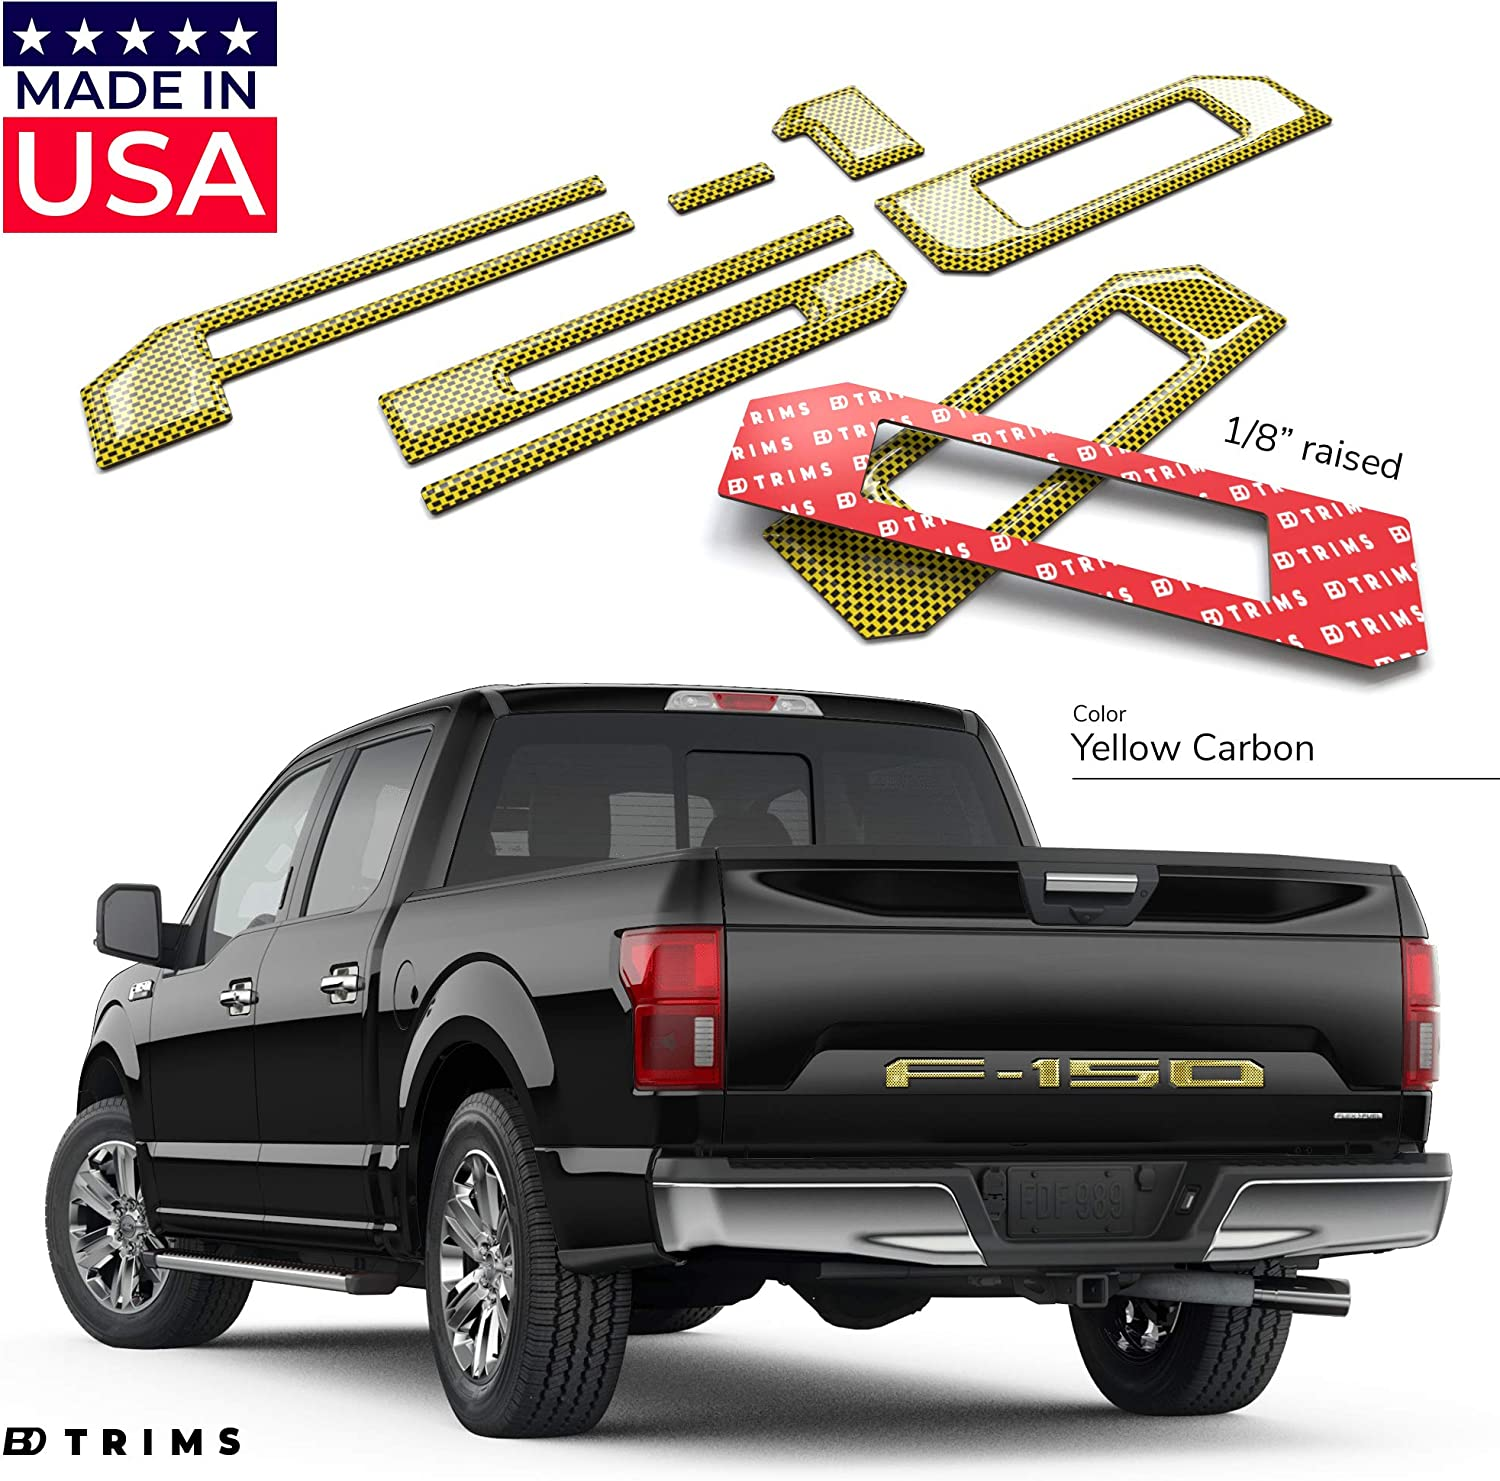 Orange BDTrims Domed 3D Raised Tailgate Letters Compatible with 2018-2020 F-150 Models